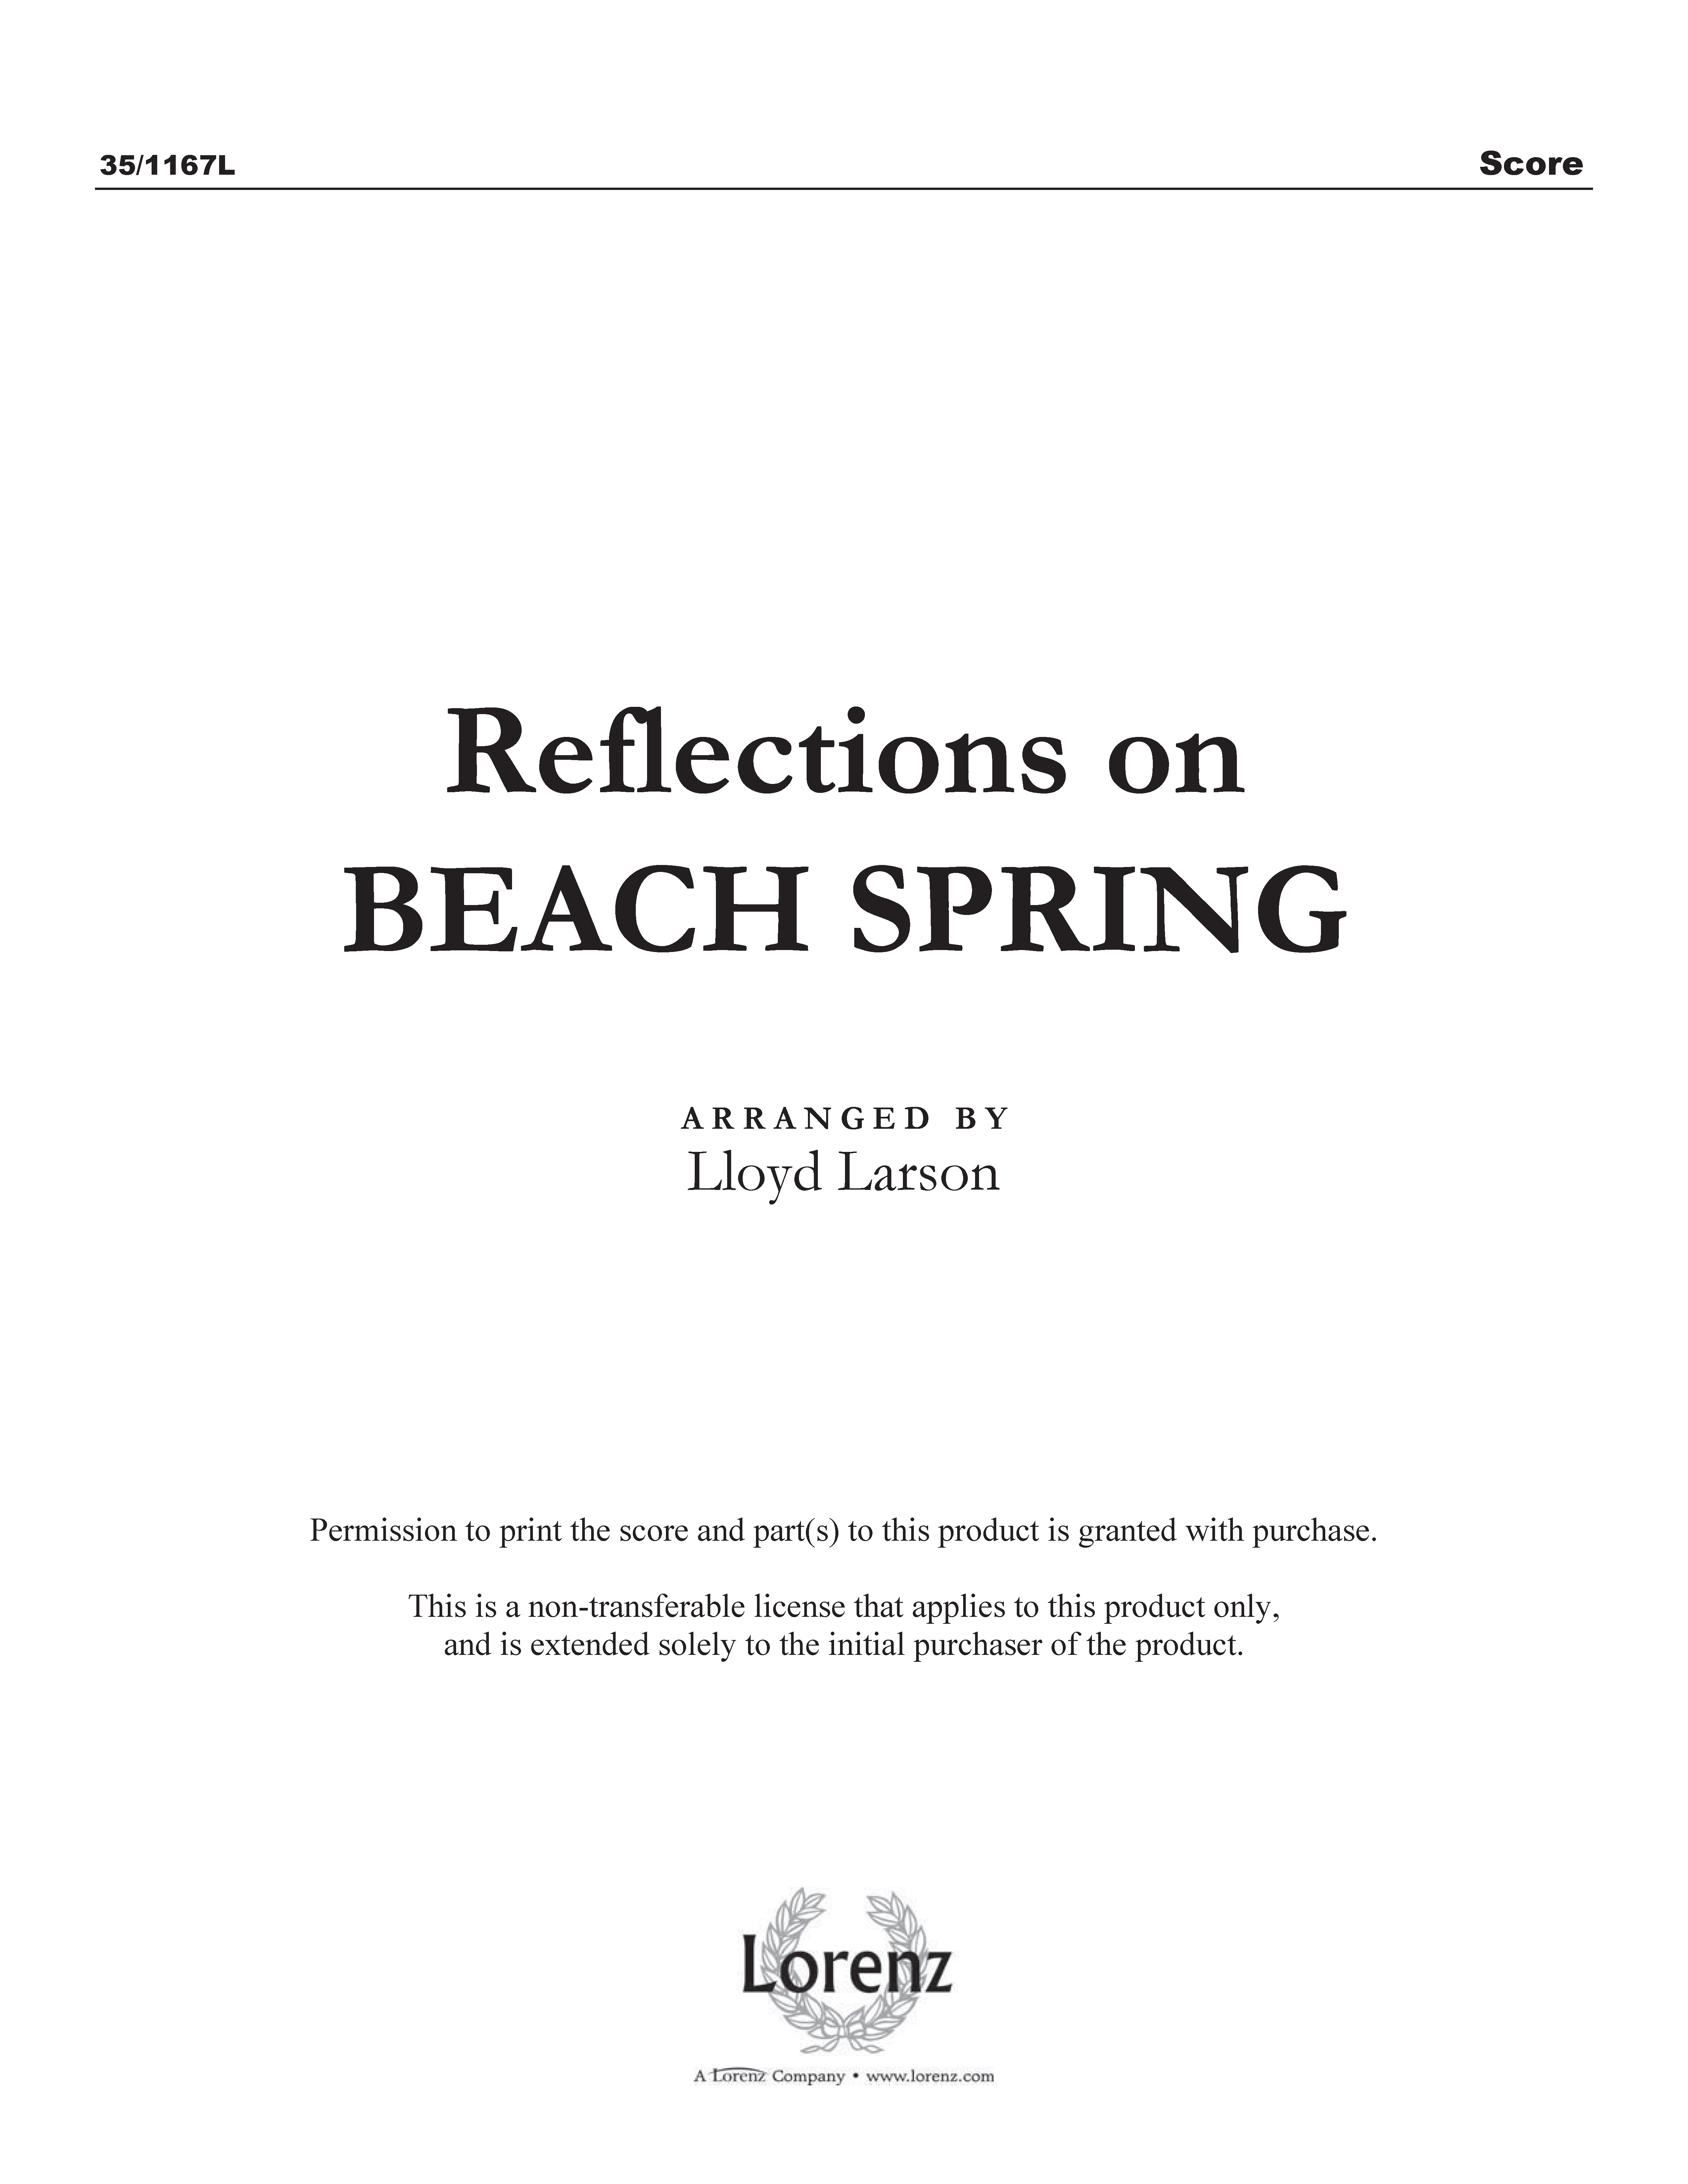 Reflections on Beach Spring (Digital Delivery)